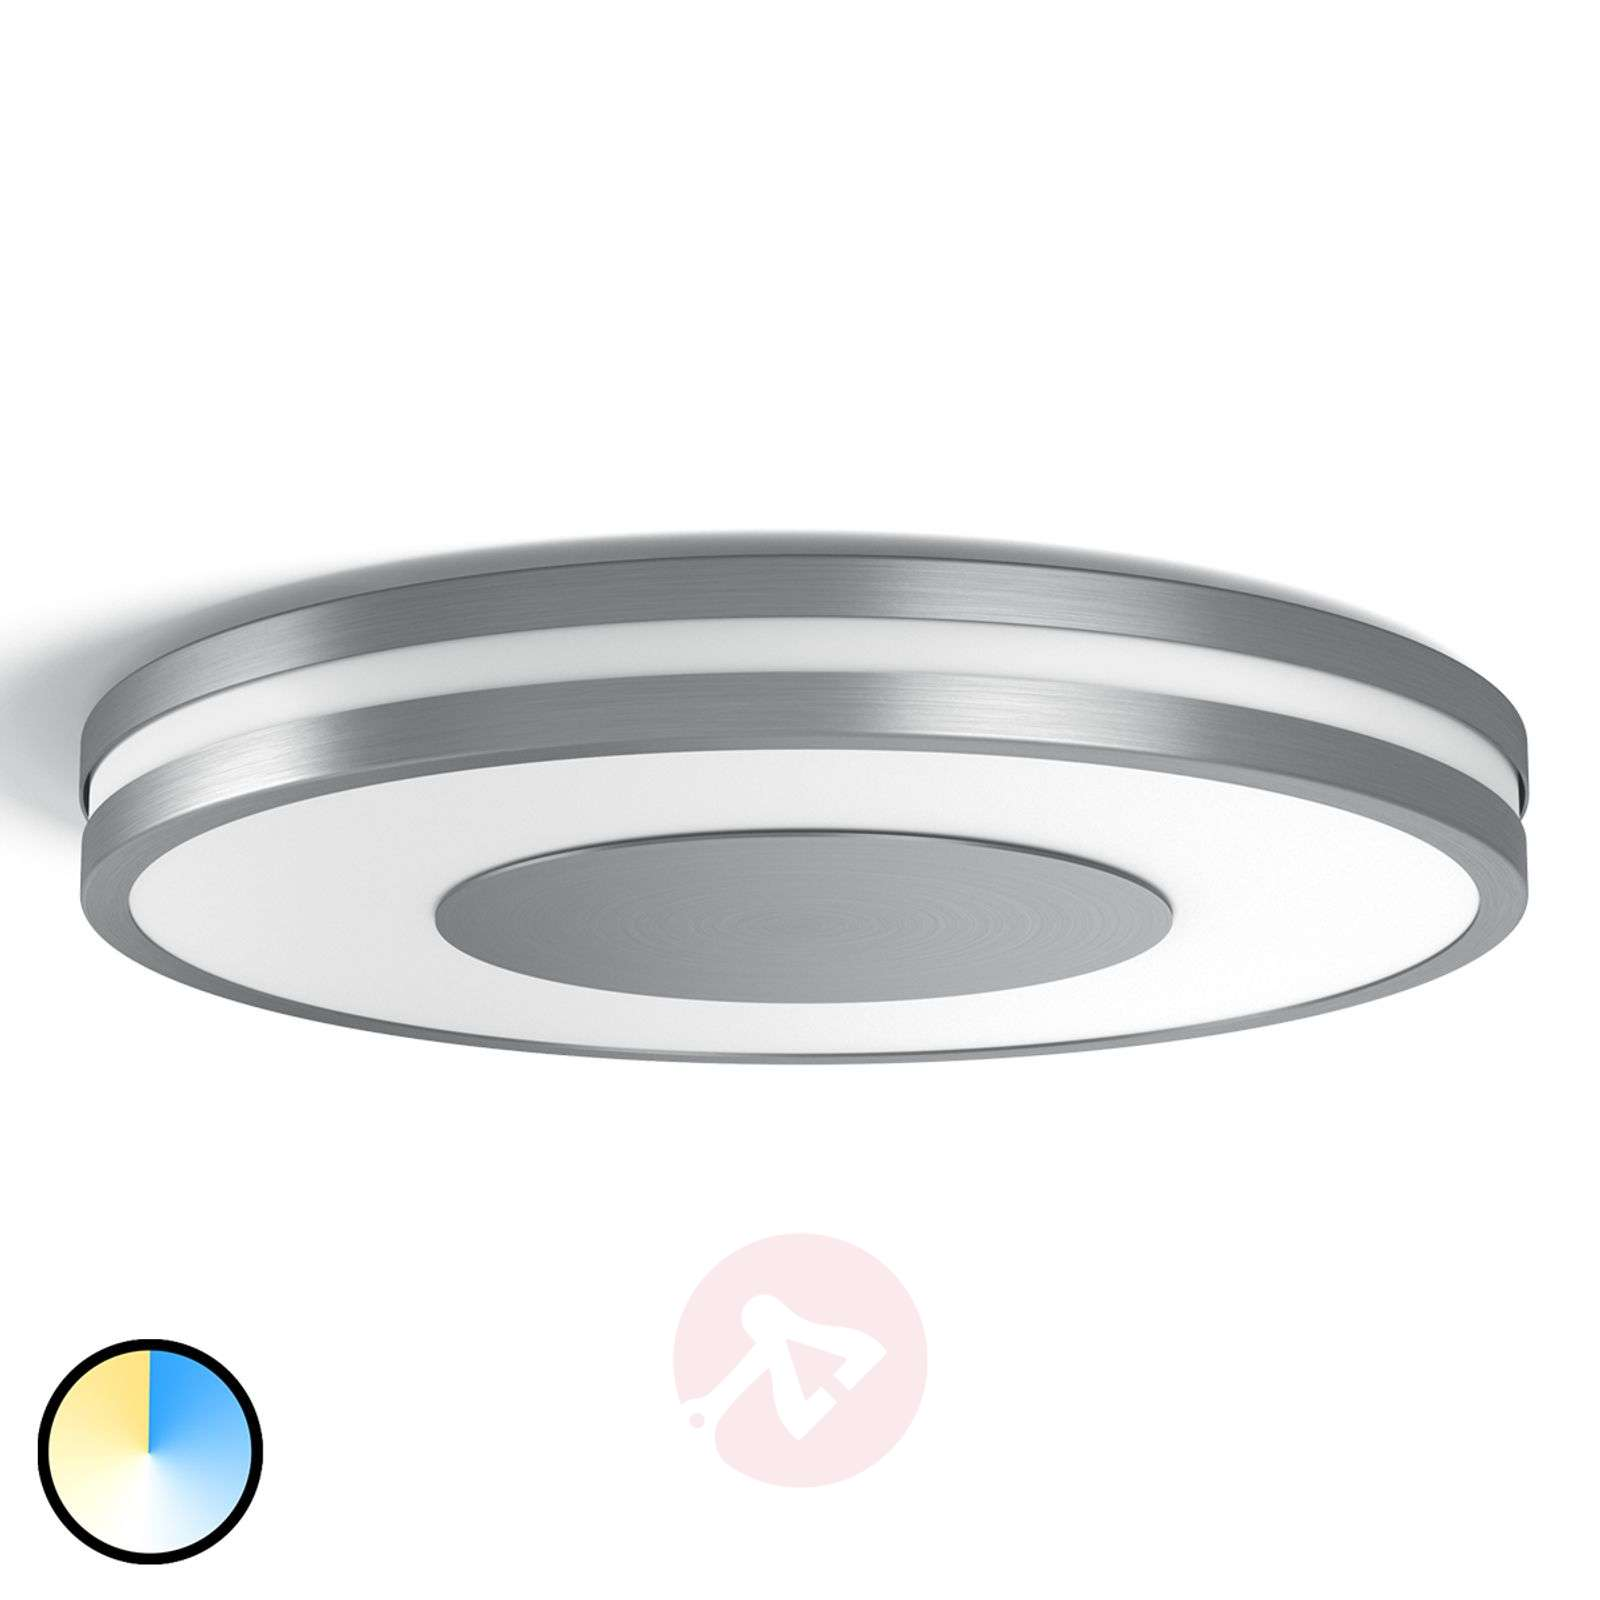 Plafón LED Being Philips Hue con regulador-7531864-01